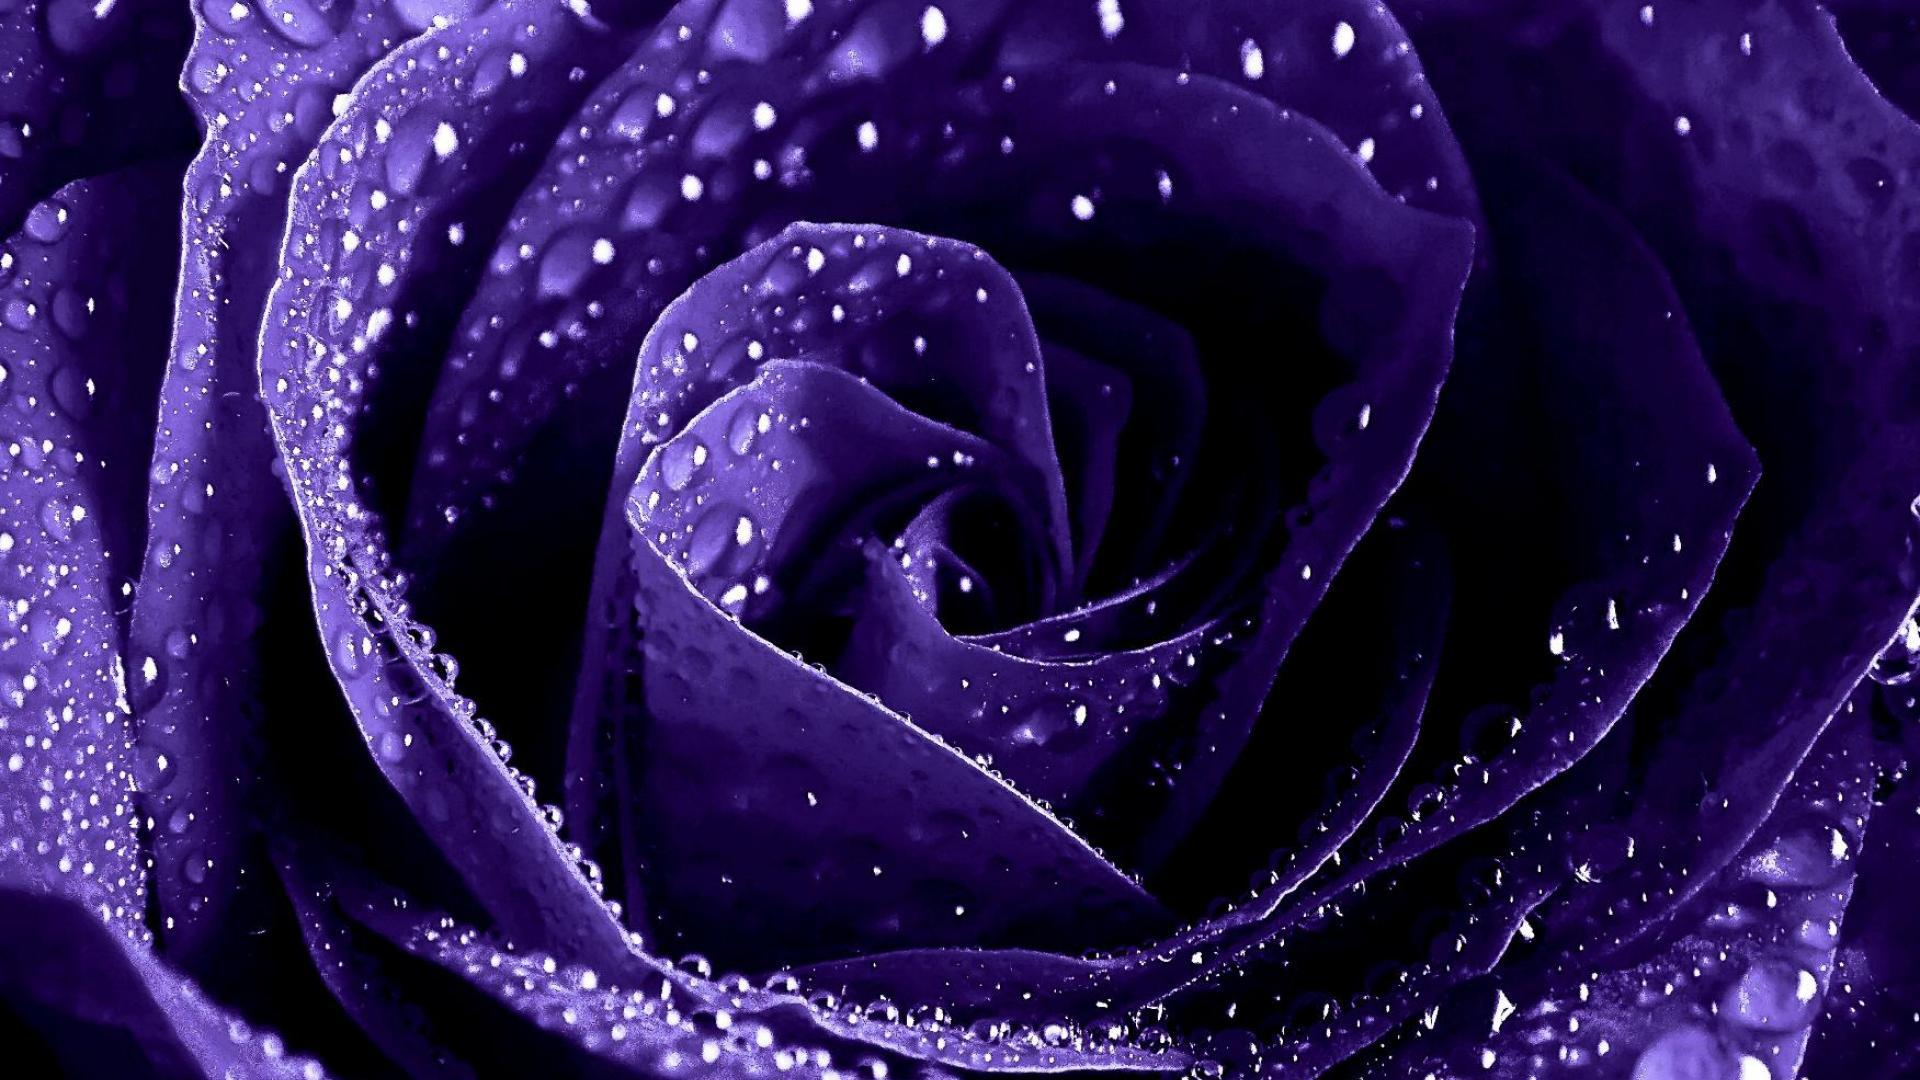 Purple Roses Wallpapers   Wallpaper High Definition High Quality 1920x1080